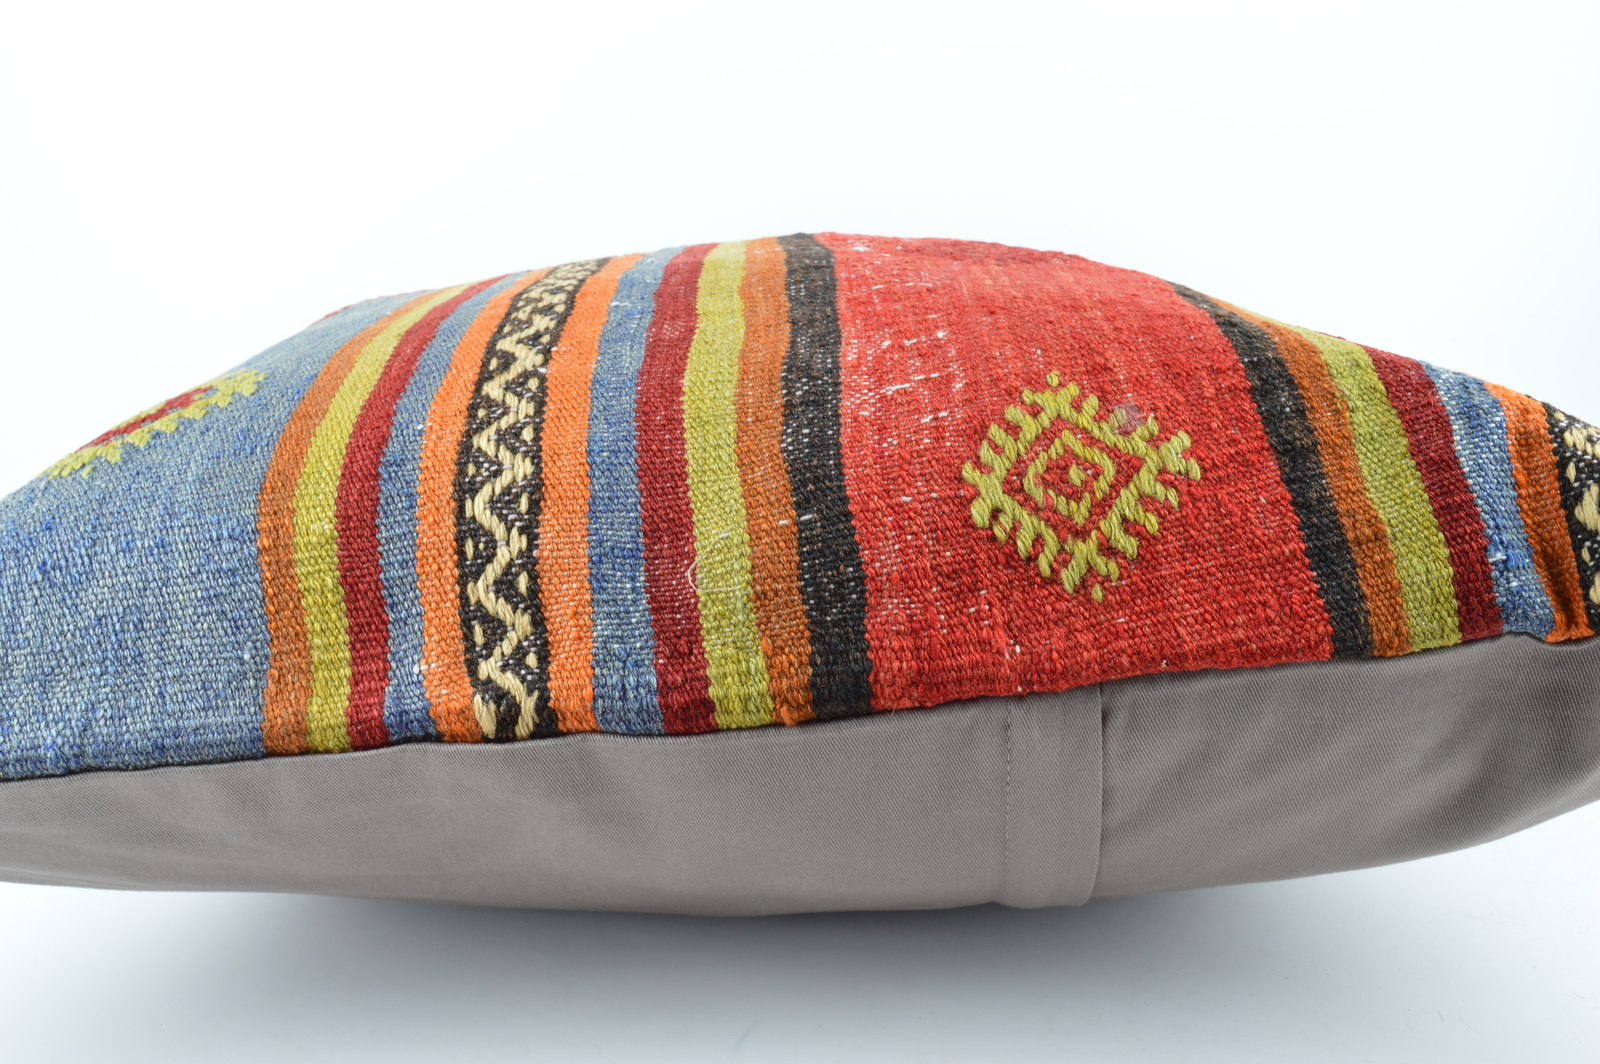 24x24'' large kilim pillow big pillow decorative pillow cover large cushion case